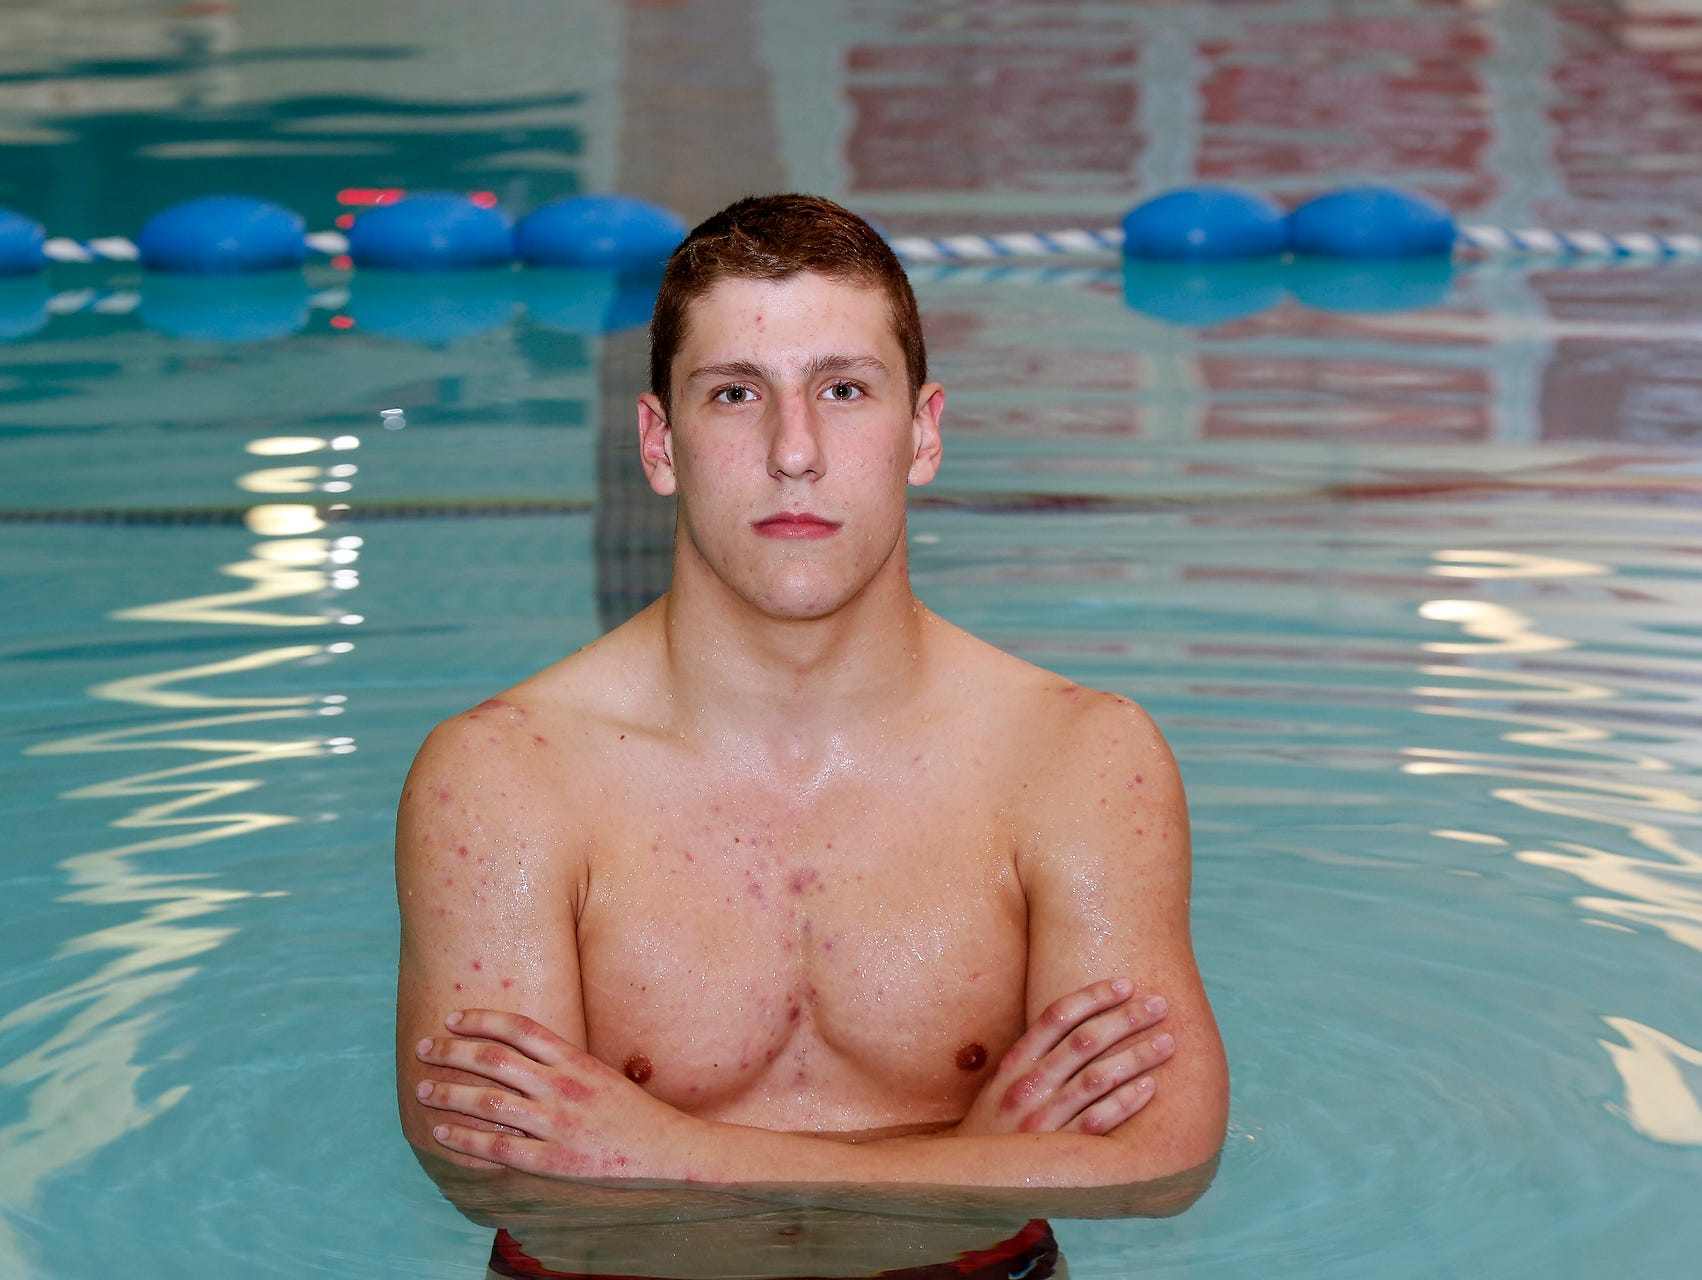 North Rockland's Matthew Zugibe, the 2015-2016 Rockland Swimmer of the Year, photographed at the North Rockland High School pool in Thiells on Tuesday, March 22, 2016.